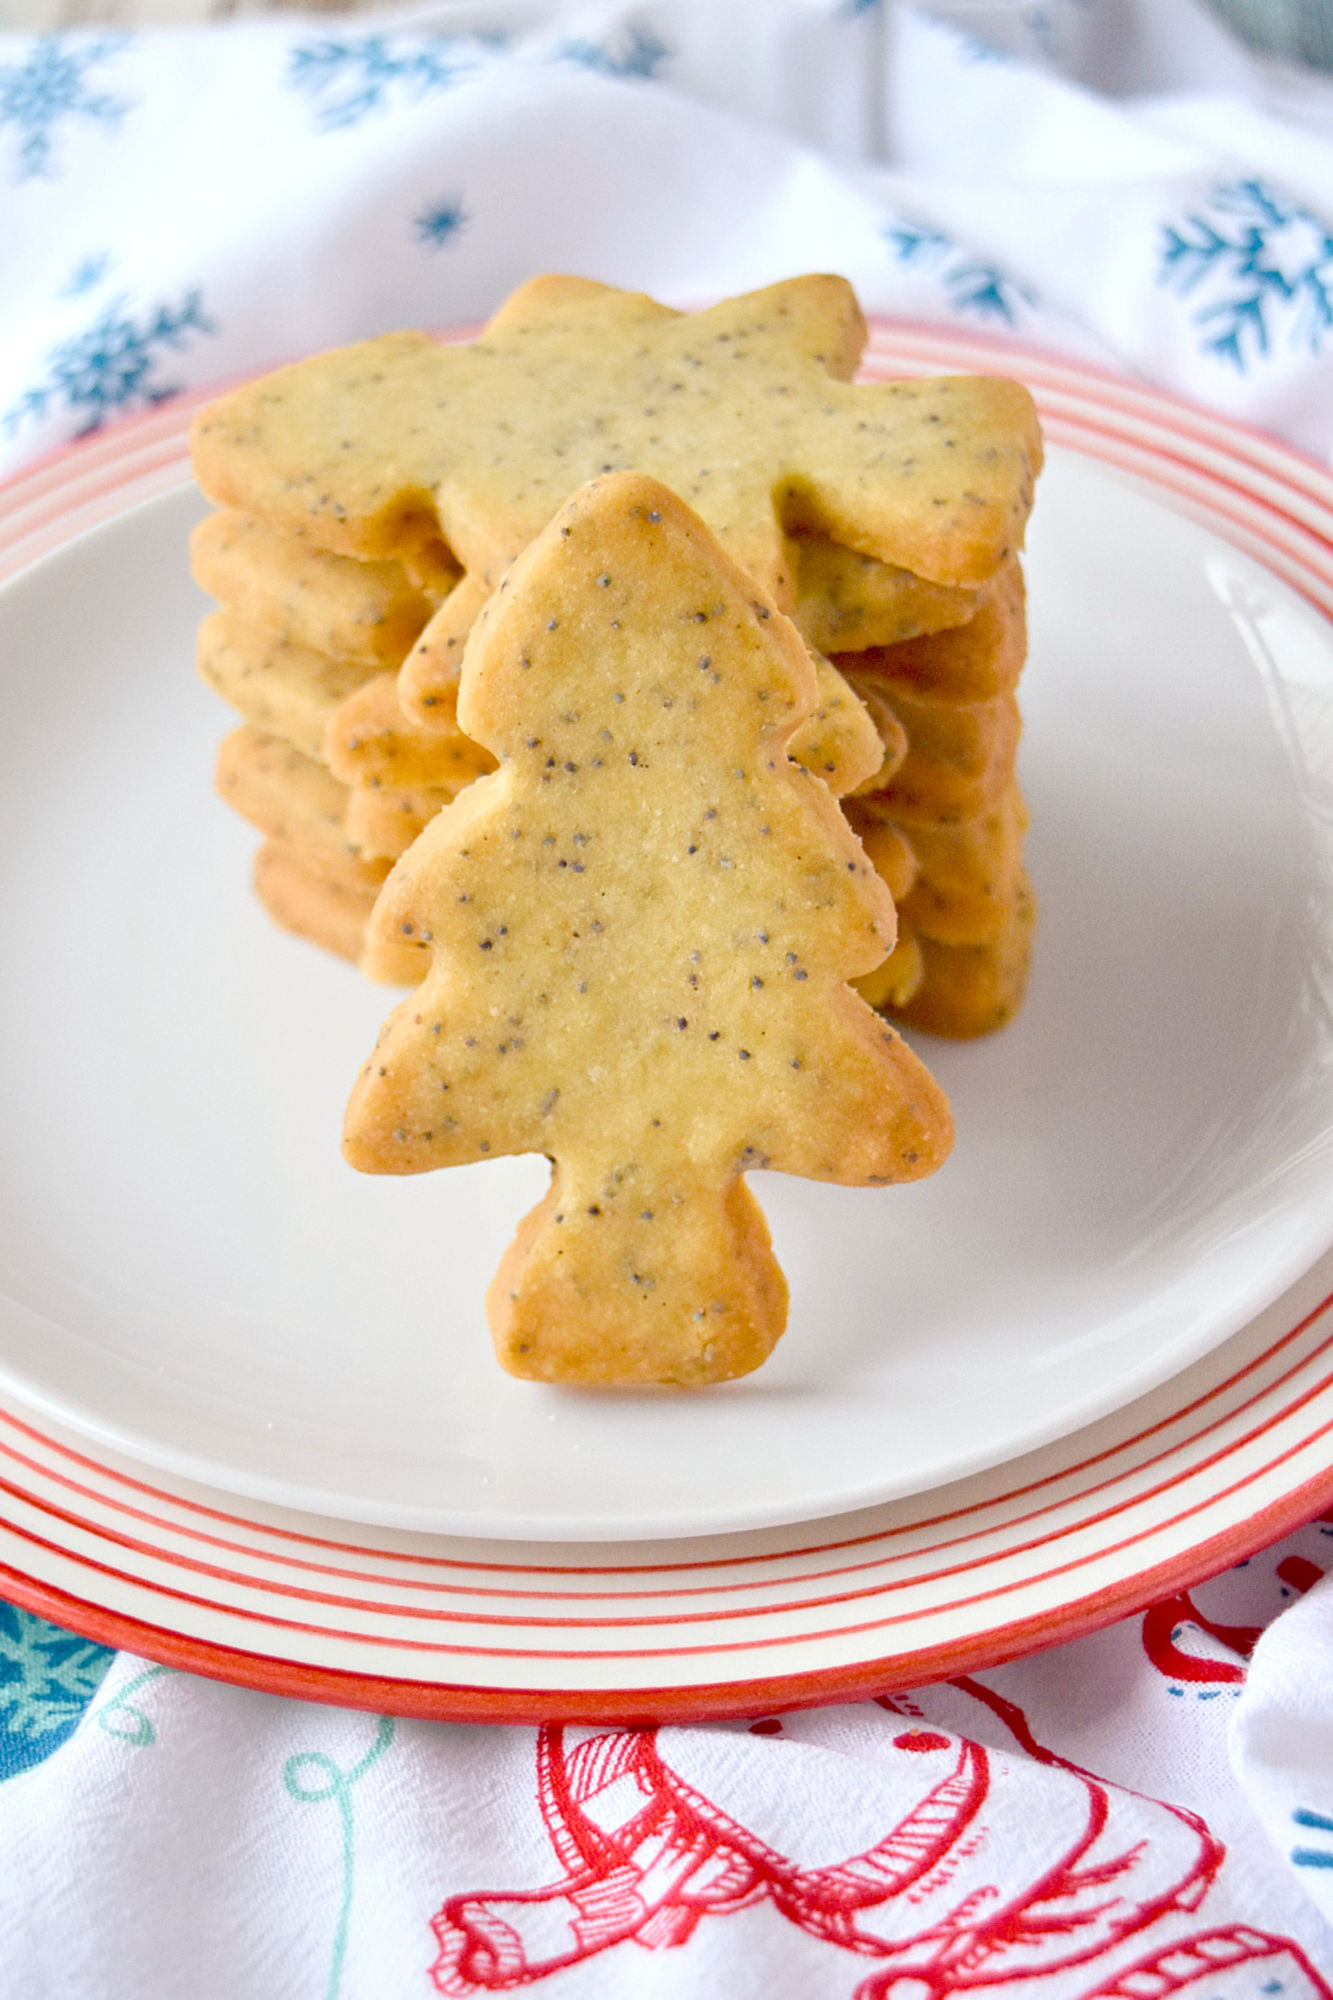 Poppy Seed Shortbread is tender and flaky shortbread speckled with poppy seeds. They're buttery, rich, and simply delicious. #ChristmasCoookies